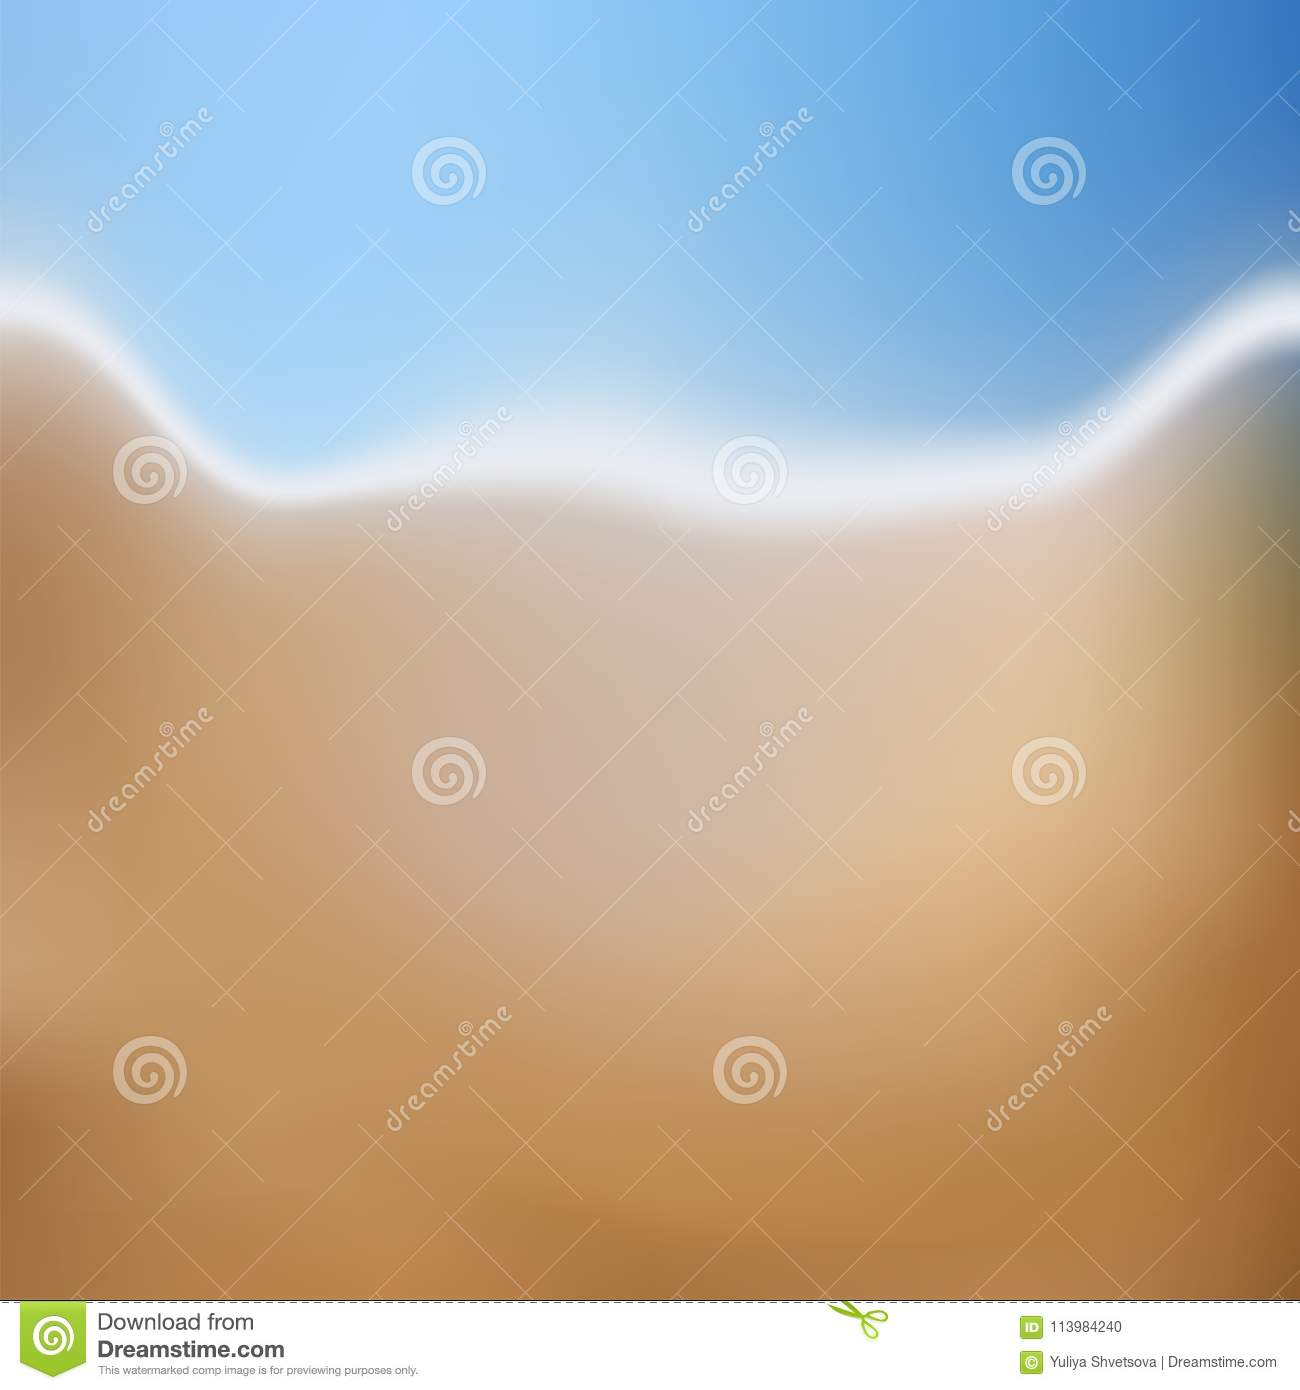 Background Of Blurred Beach And Sea Waves With Bokeh: Vector Blurred Beach And Ocean For Treveling Card, And